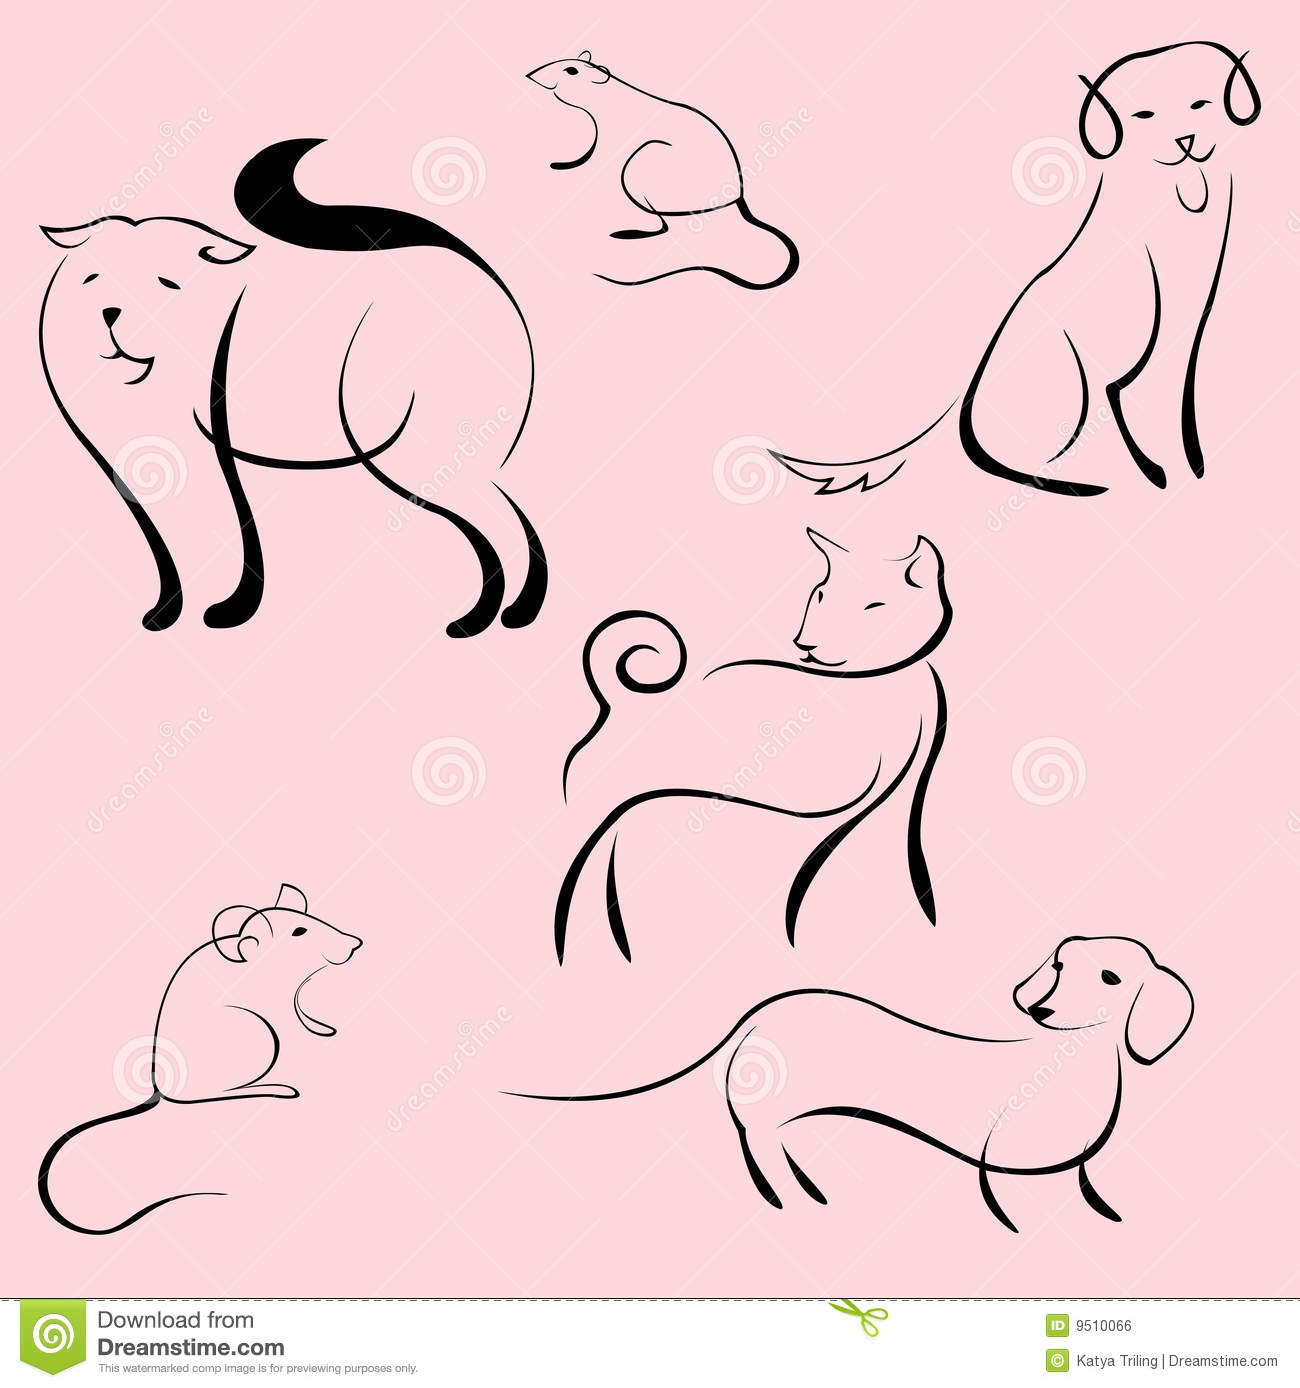 Simple Line Art Animals : Domestic animals design set royalty free stock image